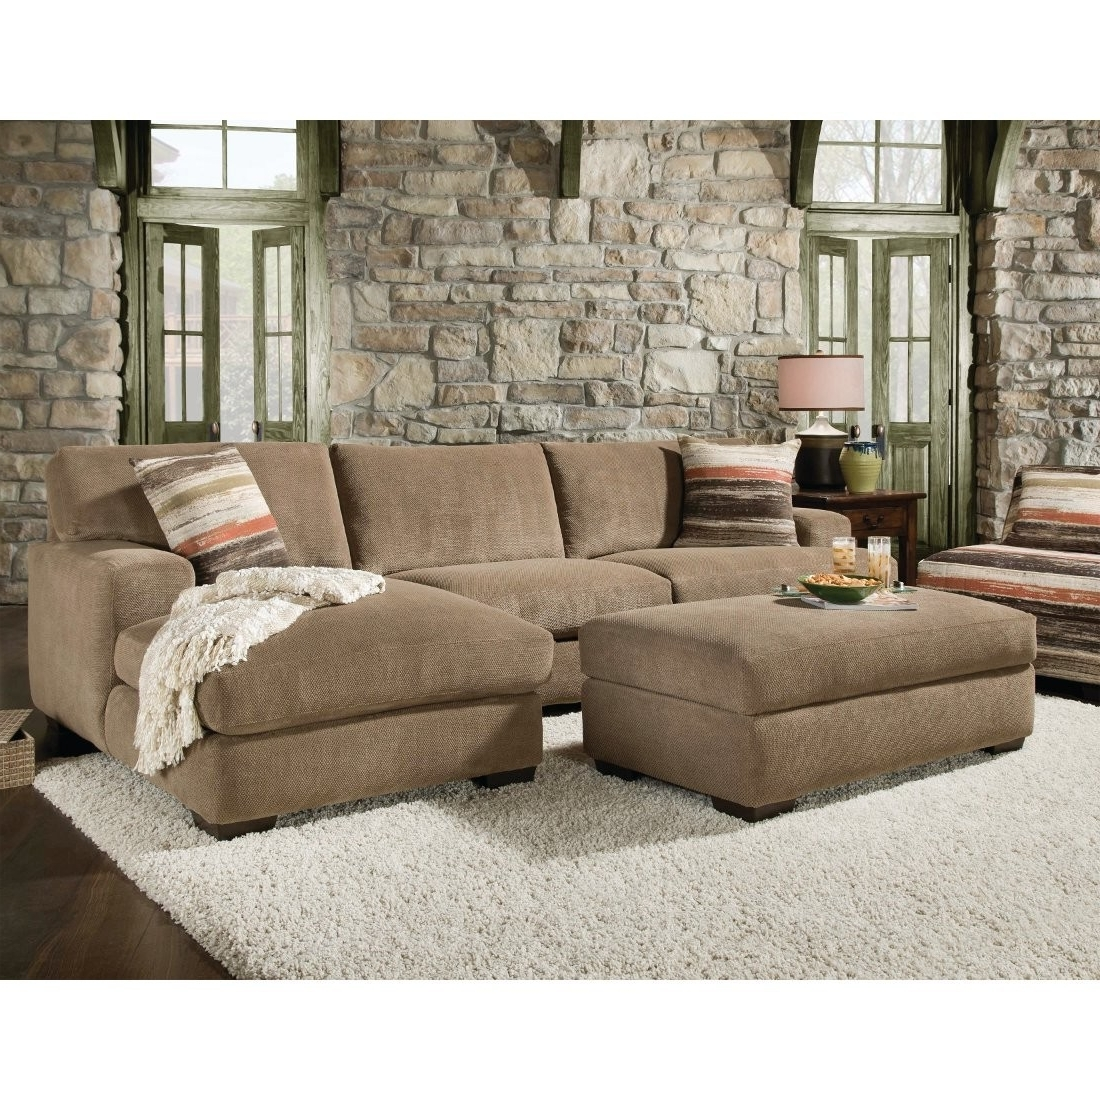 2 Piece Sectional Sofa With Chaise Design (View 10 of 15)